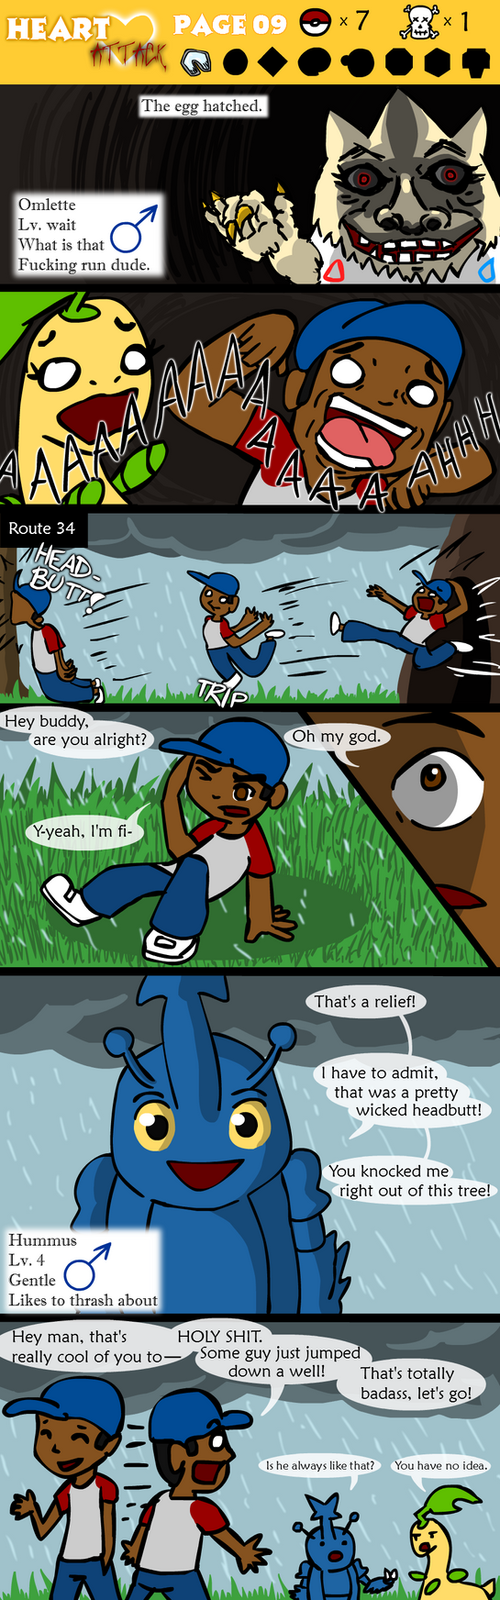 Heart Attack - Page 9 by AranOcean